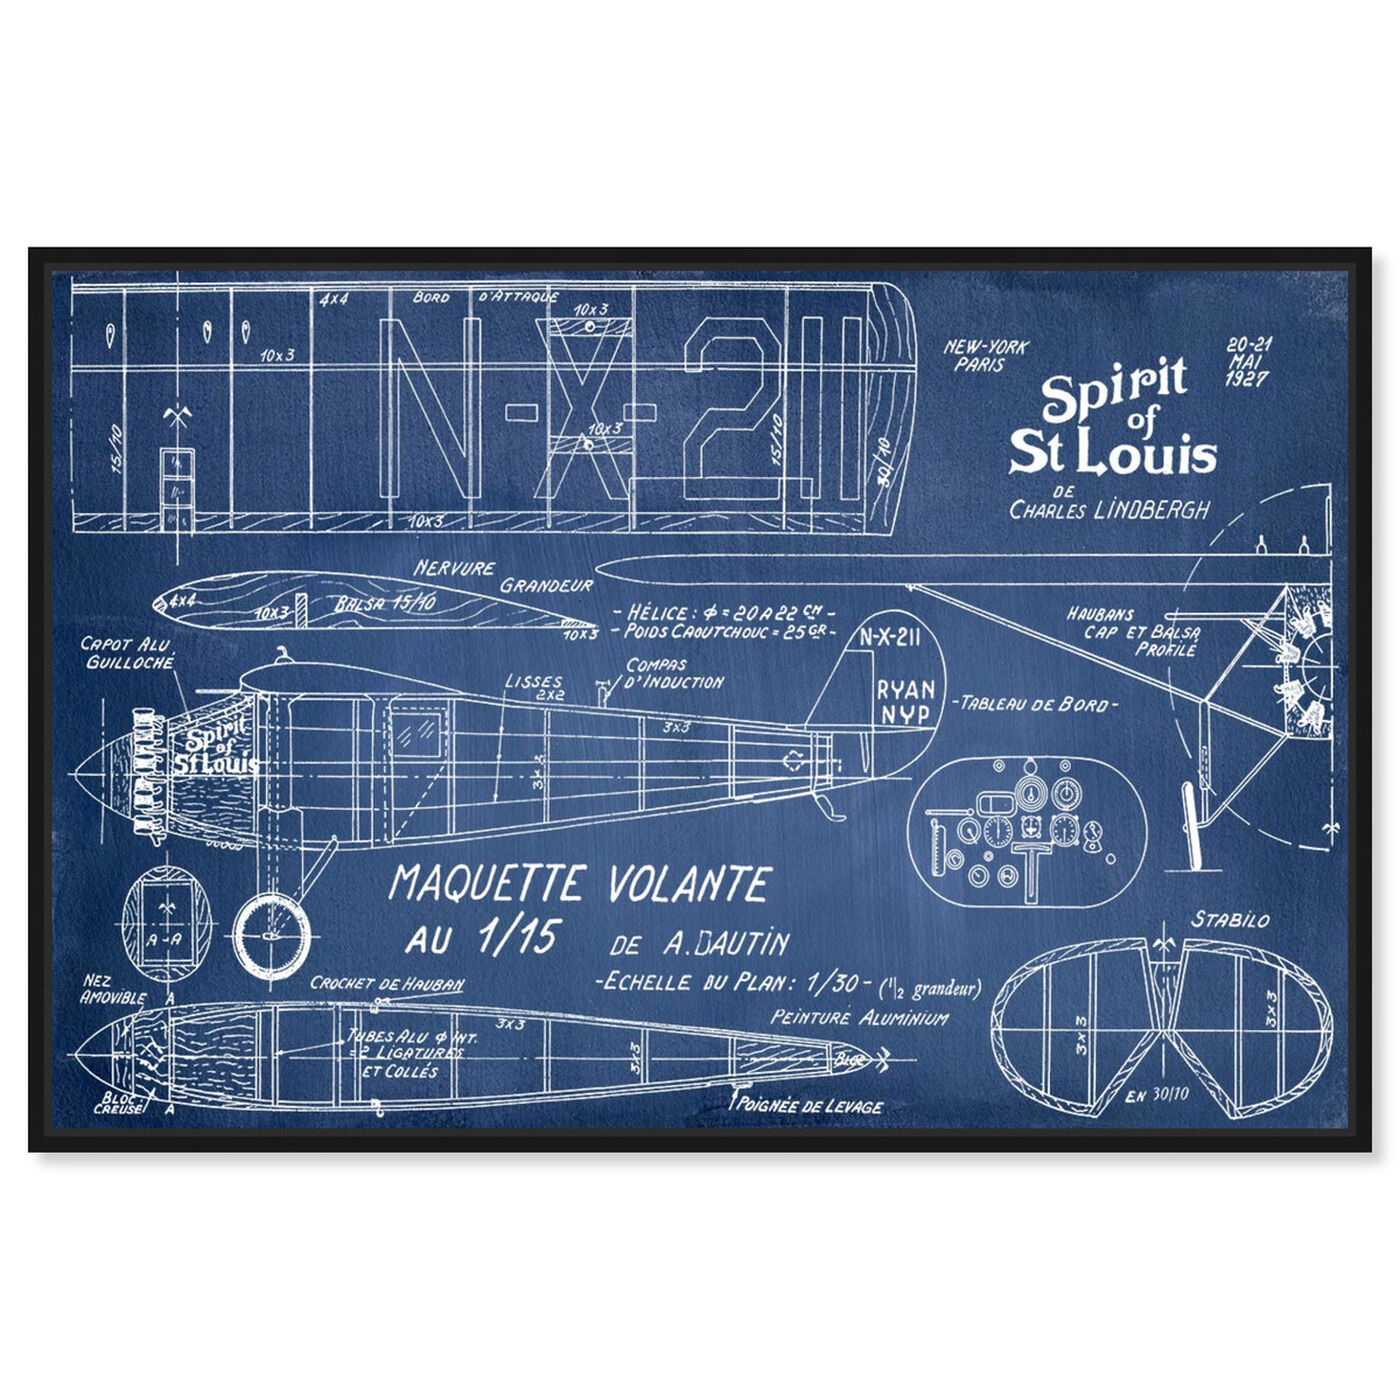 Front view of Marquette Volante featuring transportation and airplanes art.